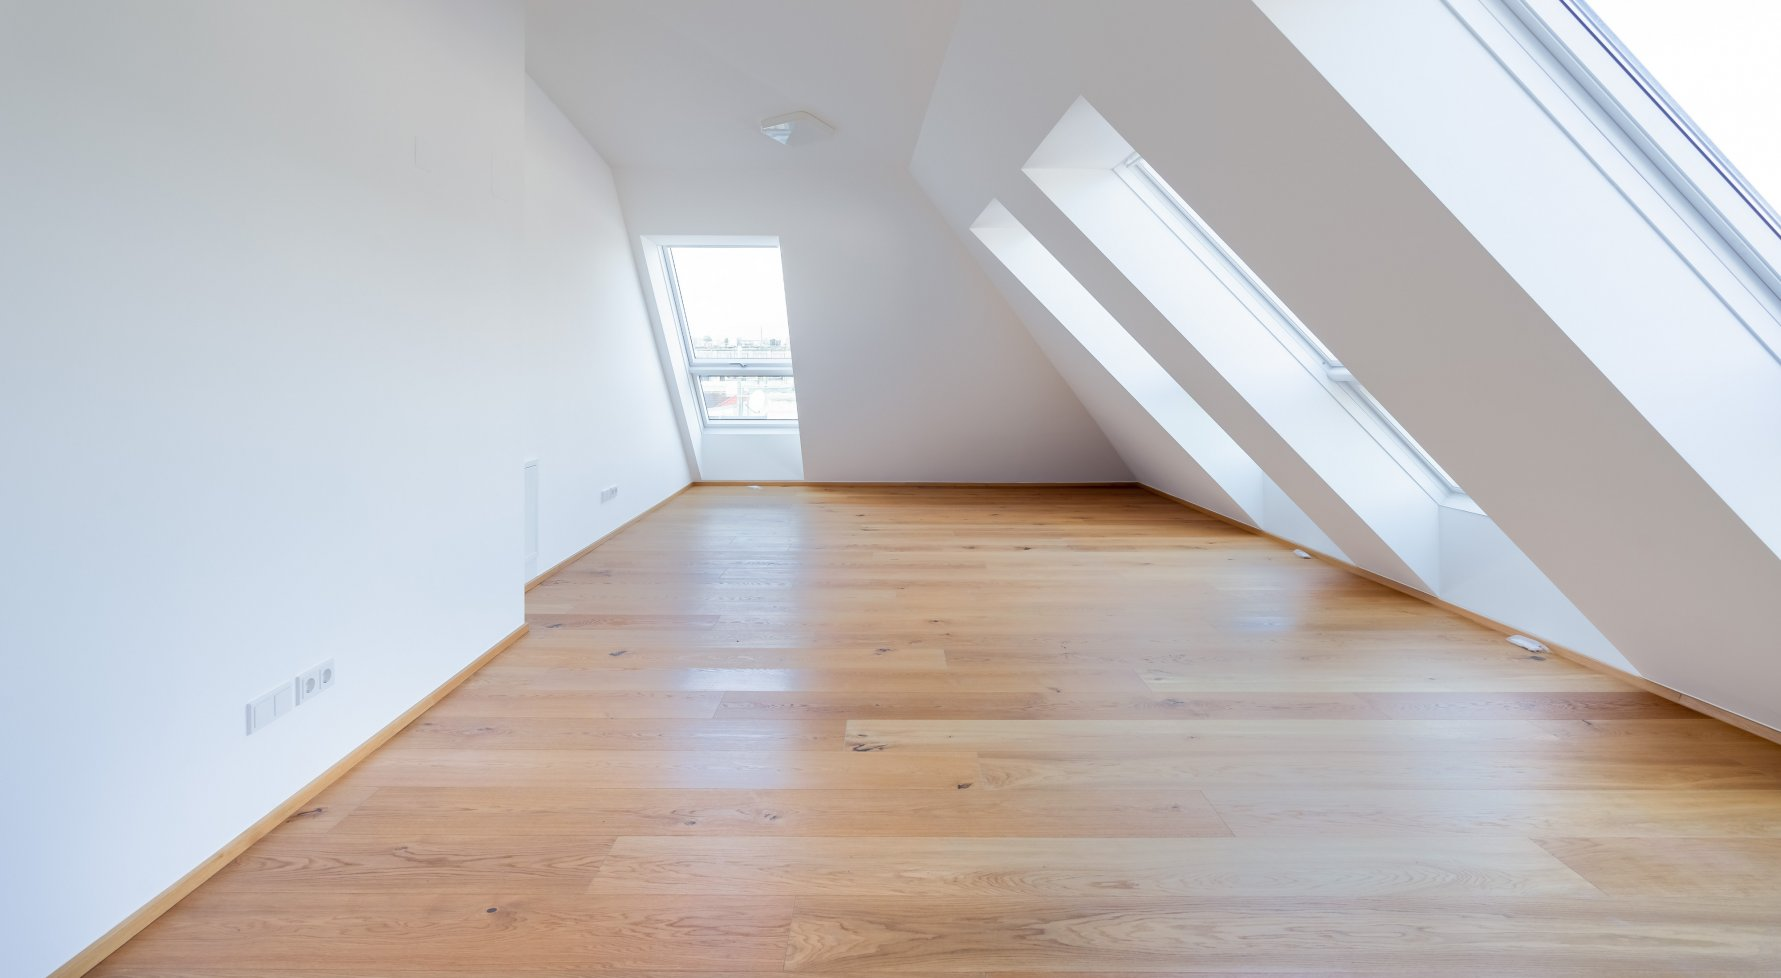 Property in 1040 Wien, 4. Bezirk: 4th district - near U1 Taubstummengasse: penthouse maisonette with 360 ° view - picture 1